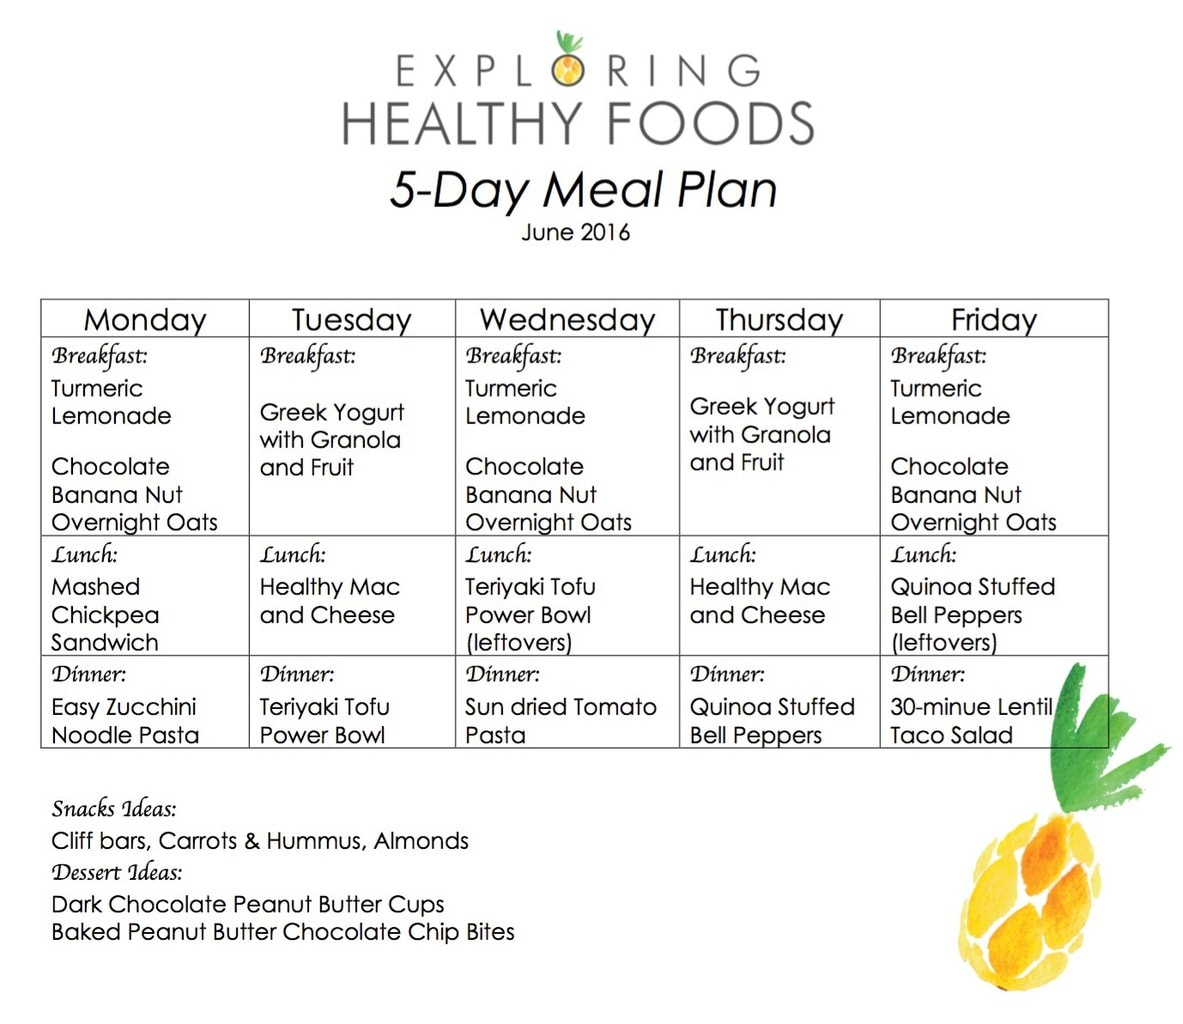 Vegetarian Meal Plan | June 2016 - Exploring Healthy Foods